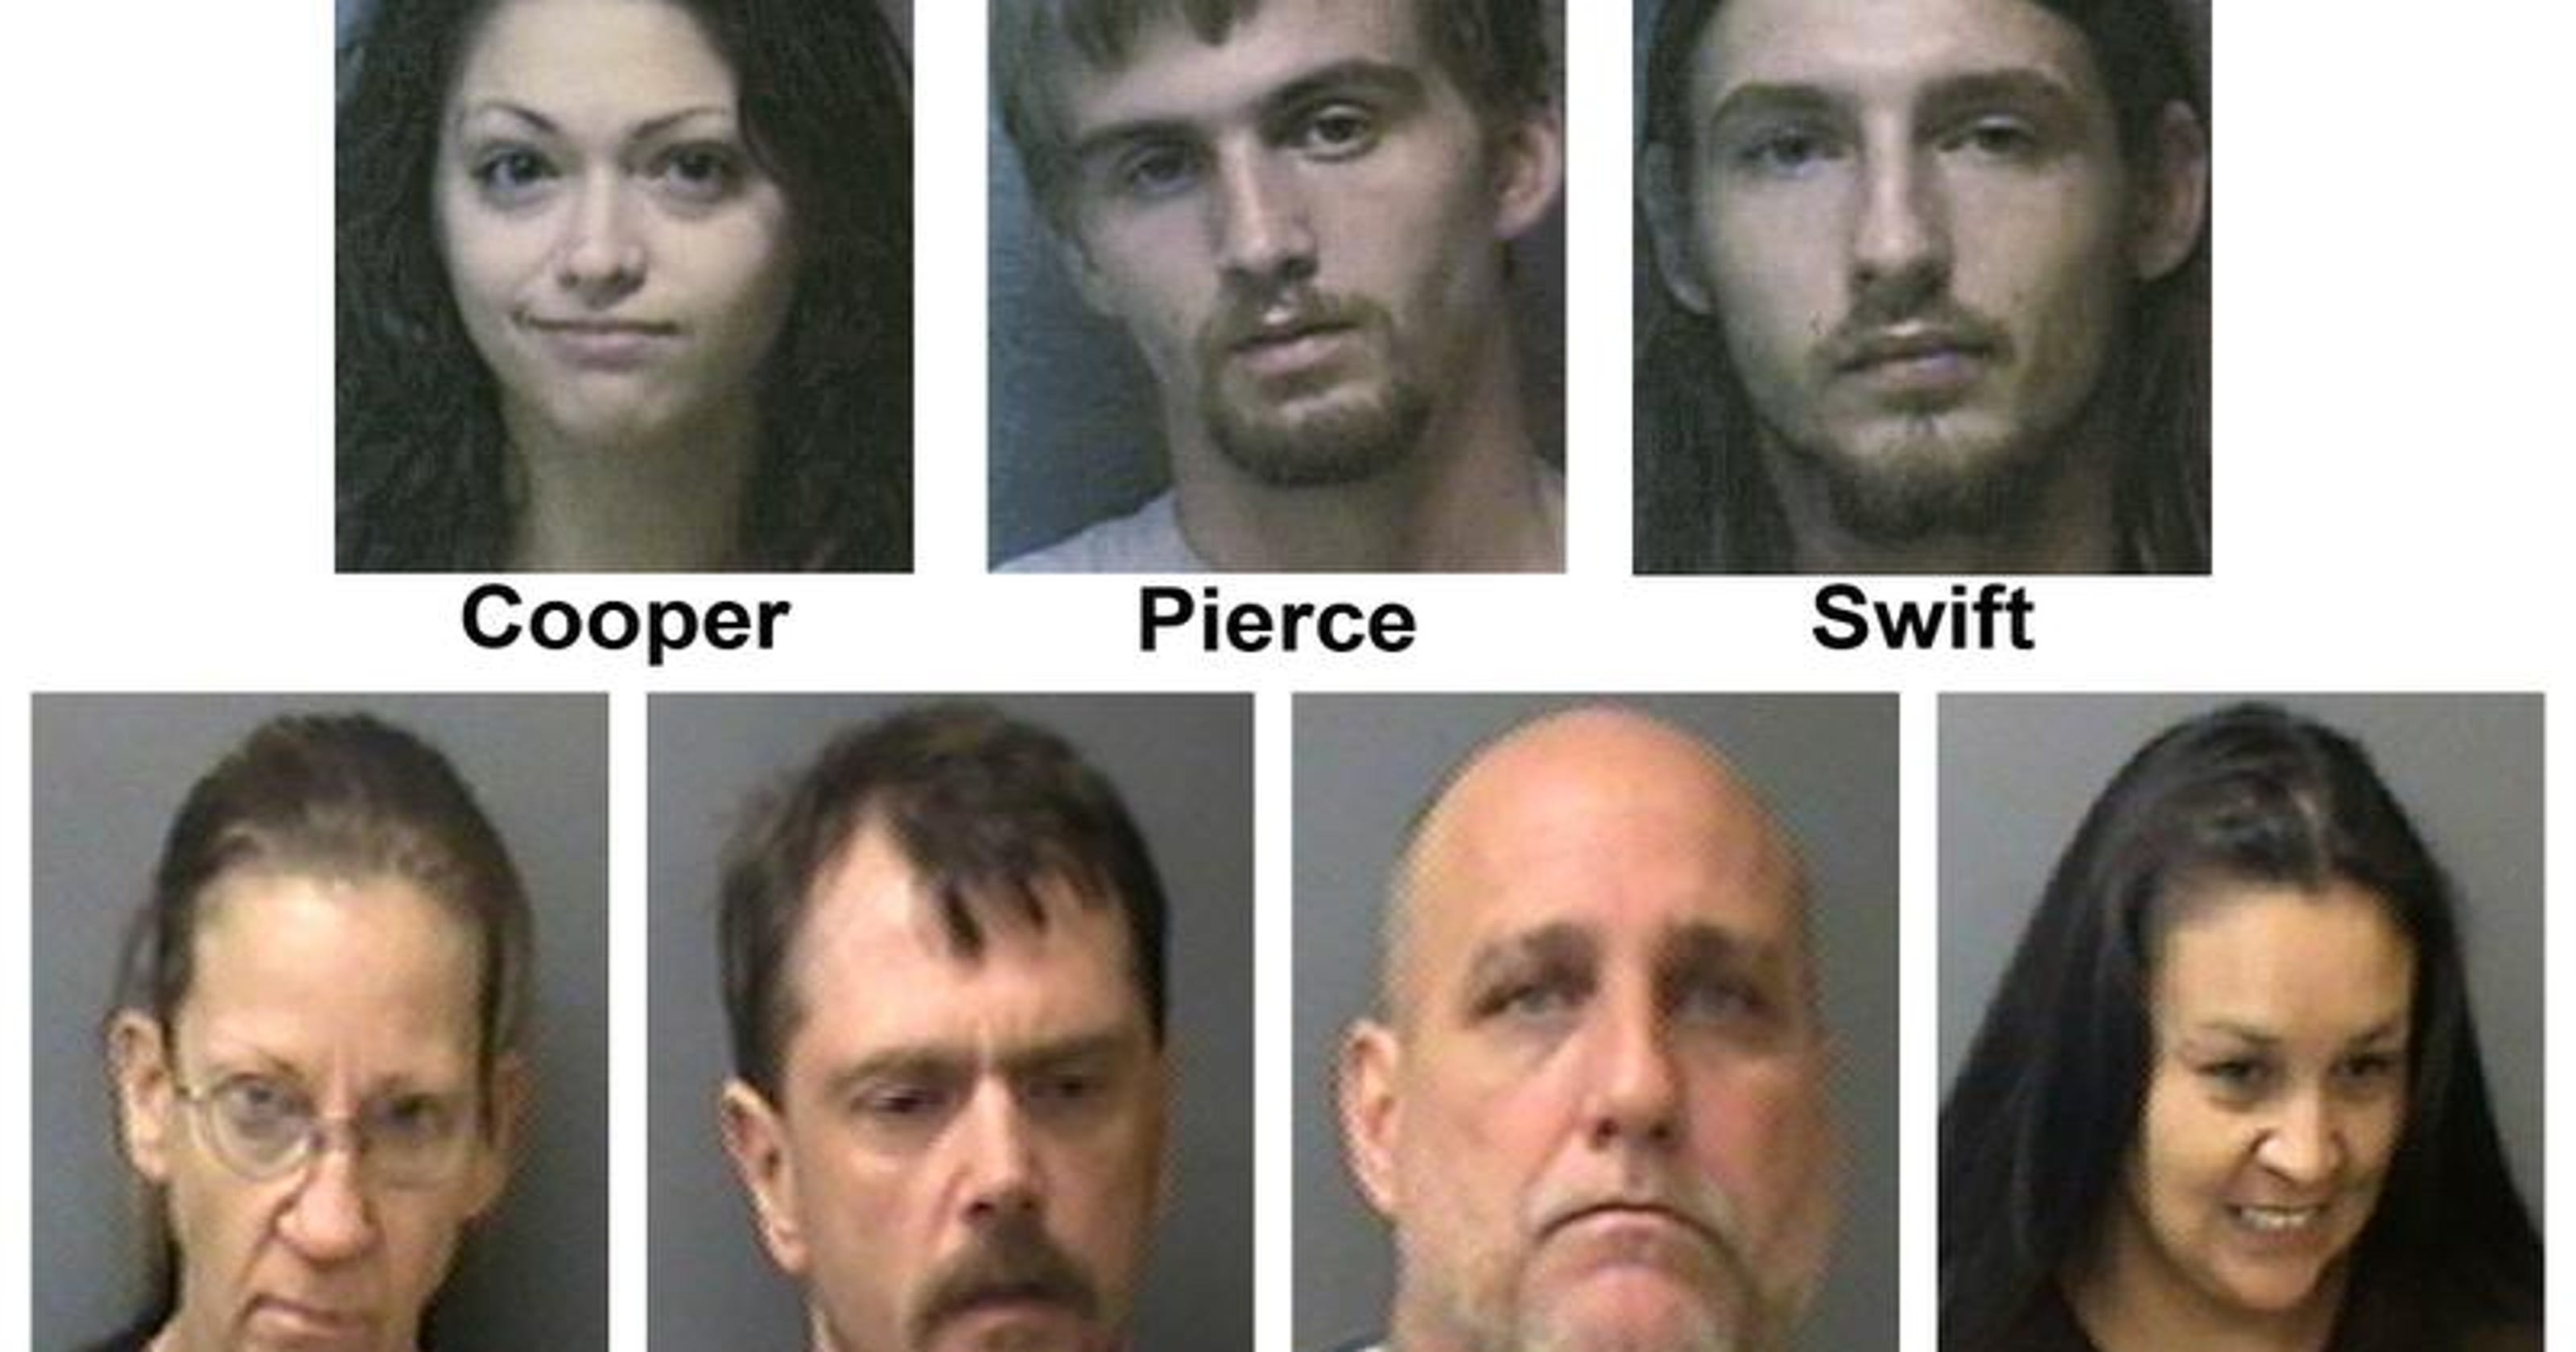 Indiana town back in spotlight after 26 meth arrests in 2 1